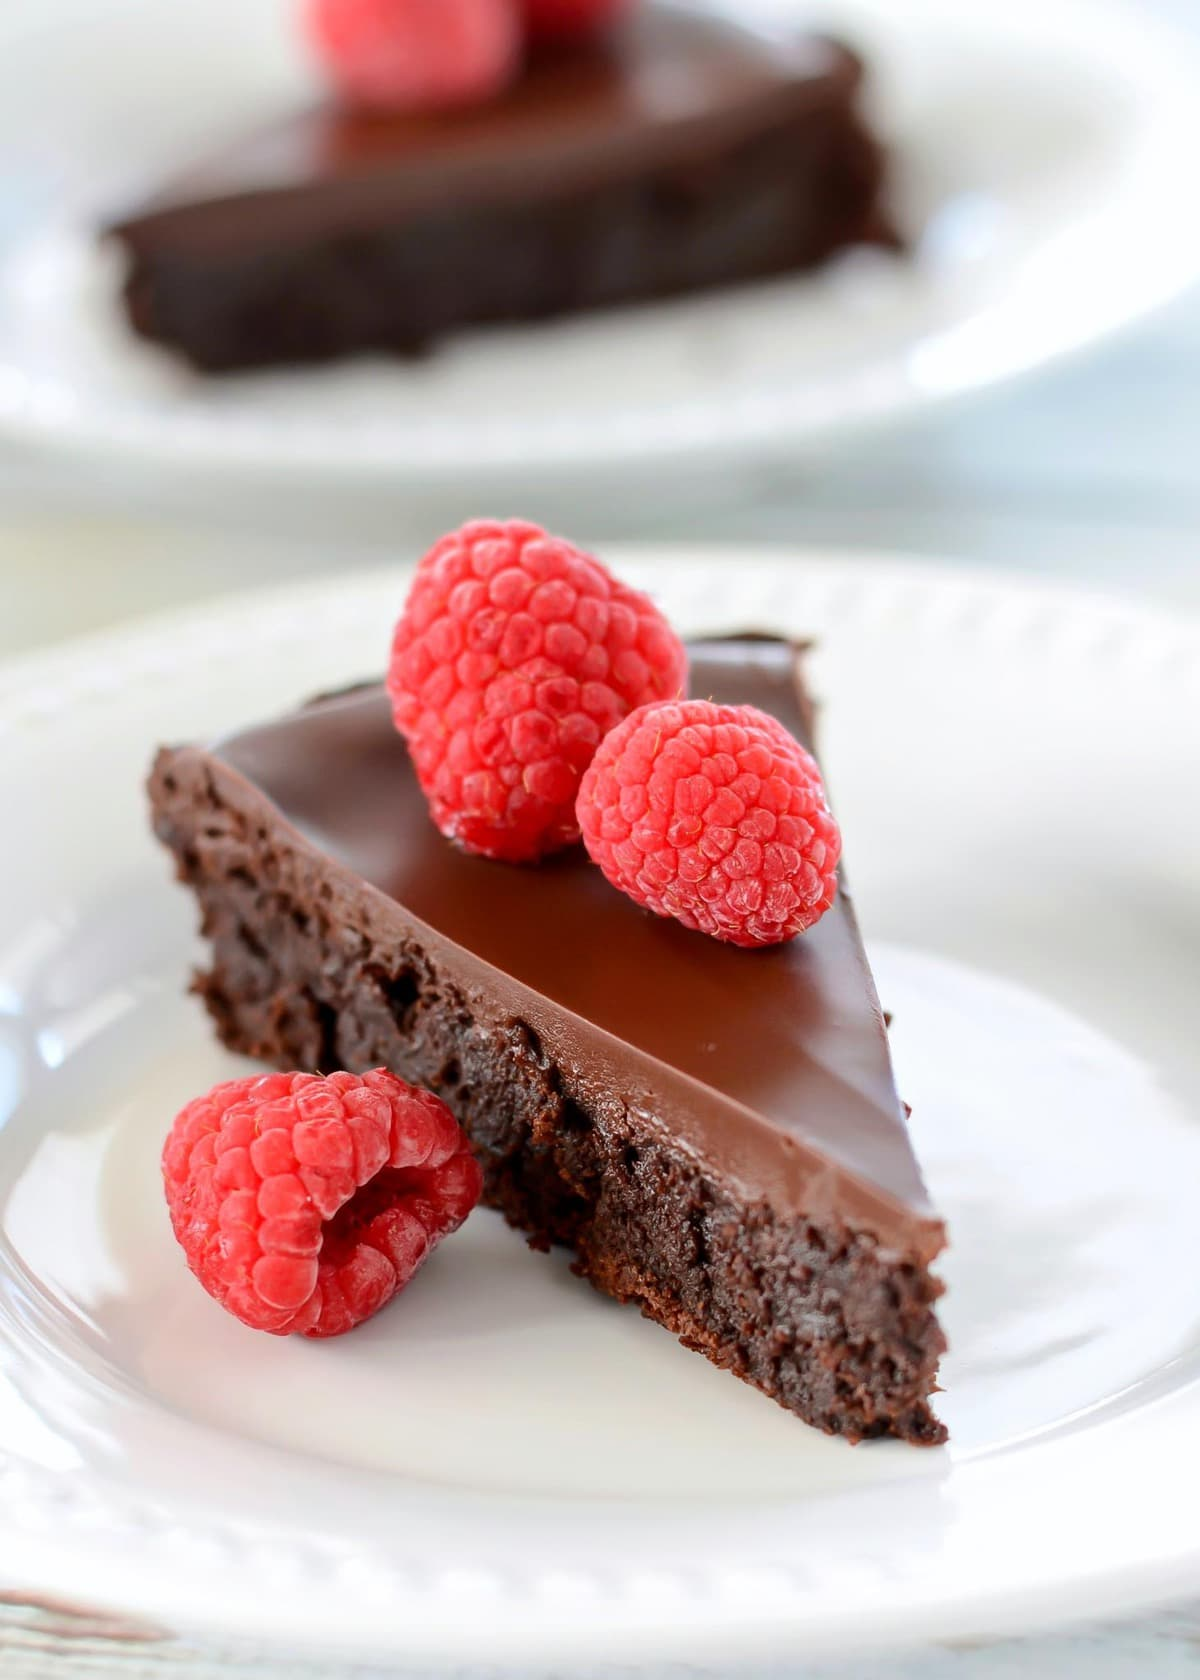 Flourless Chocolate Cake recipe with raspberries on top